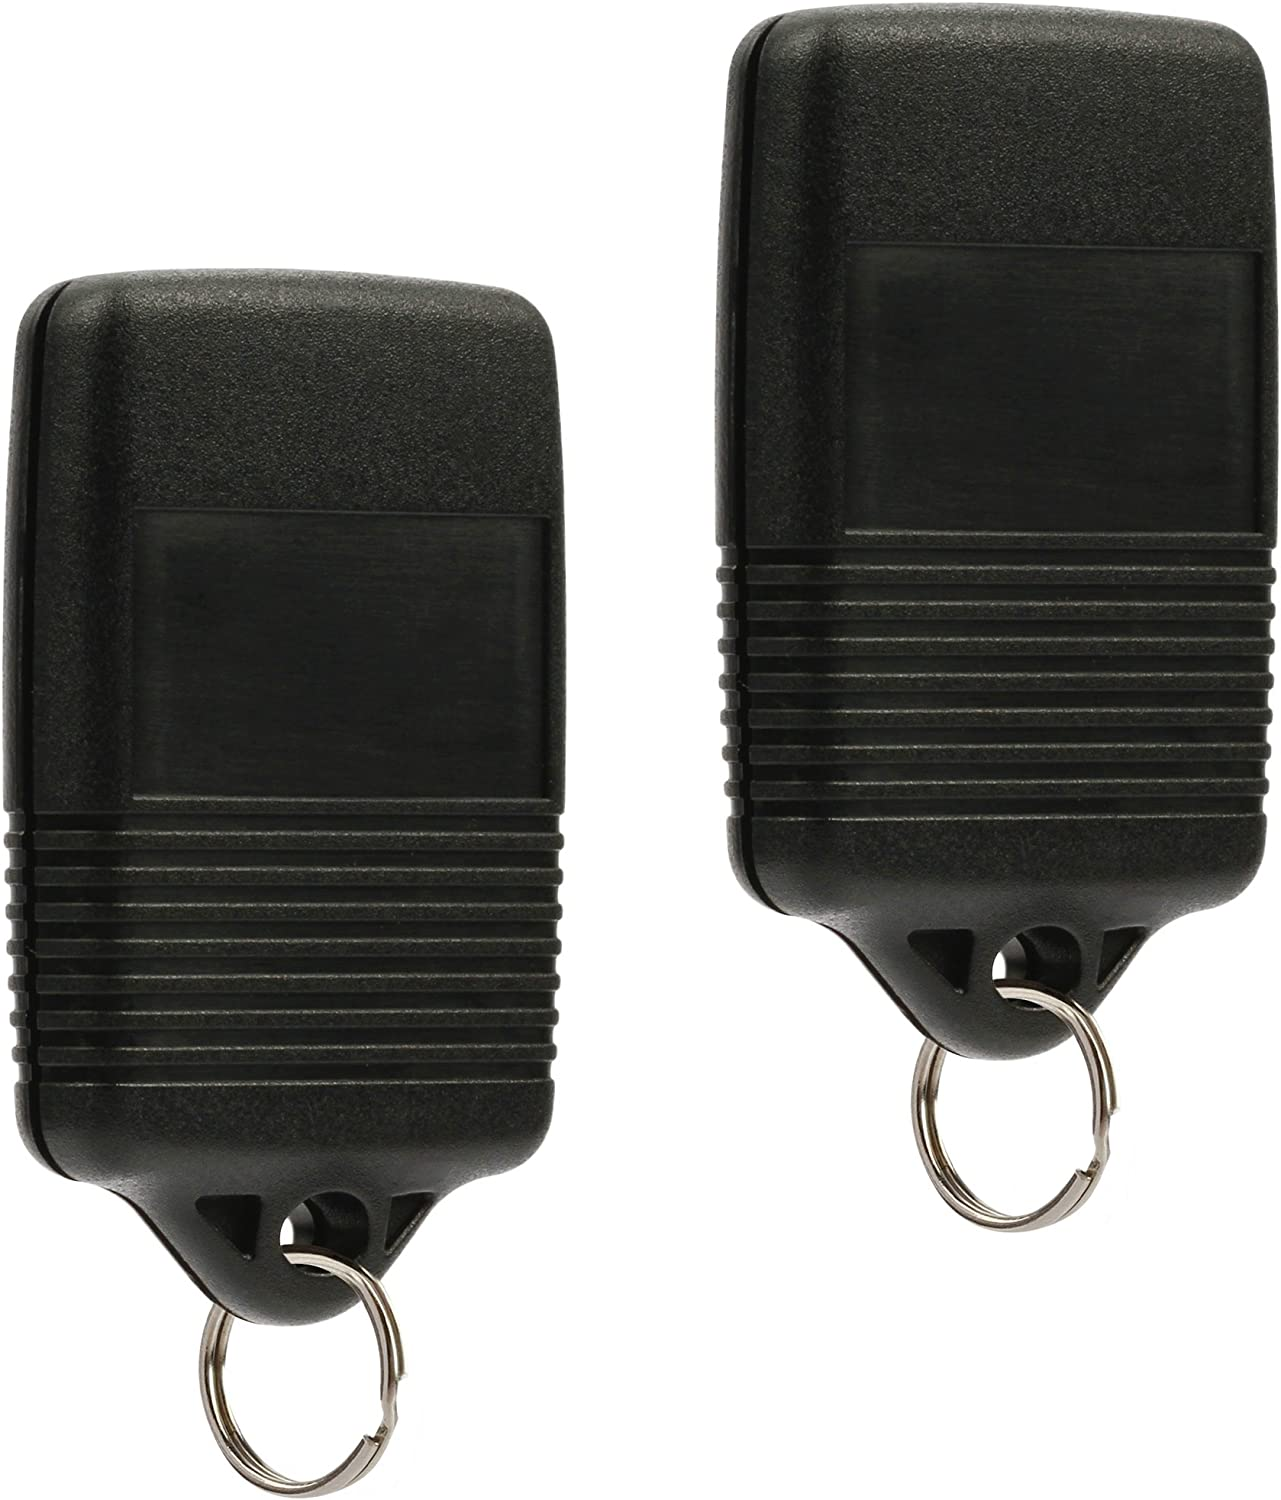 Set of 2 GQ43VT4T, 3165189, F5DZ-15K601-B Lincoln Car Key Fob Keyless Entry Remote fits Ford Mercury Mustang